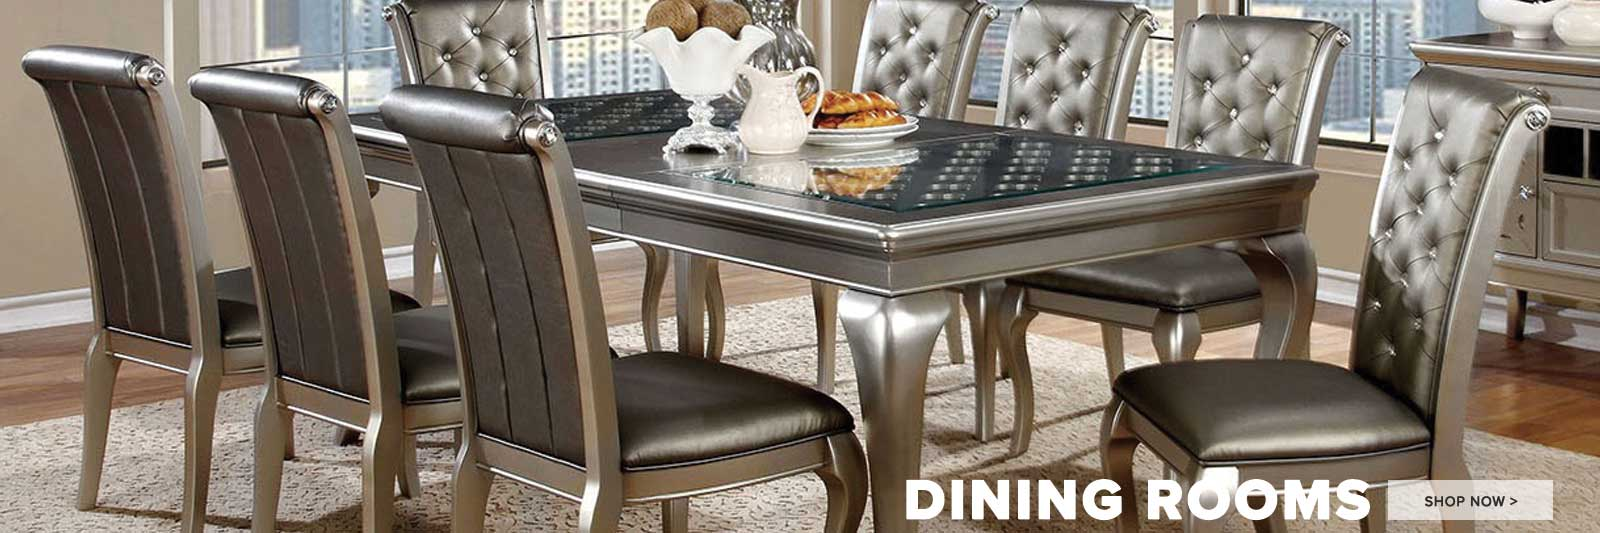 Luxury Dining Room Table Sets In Bronx, NY